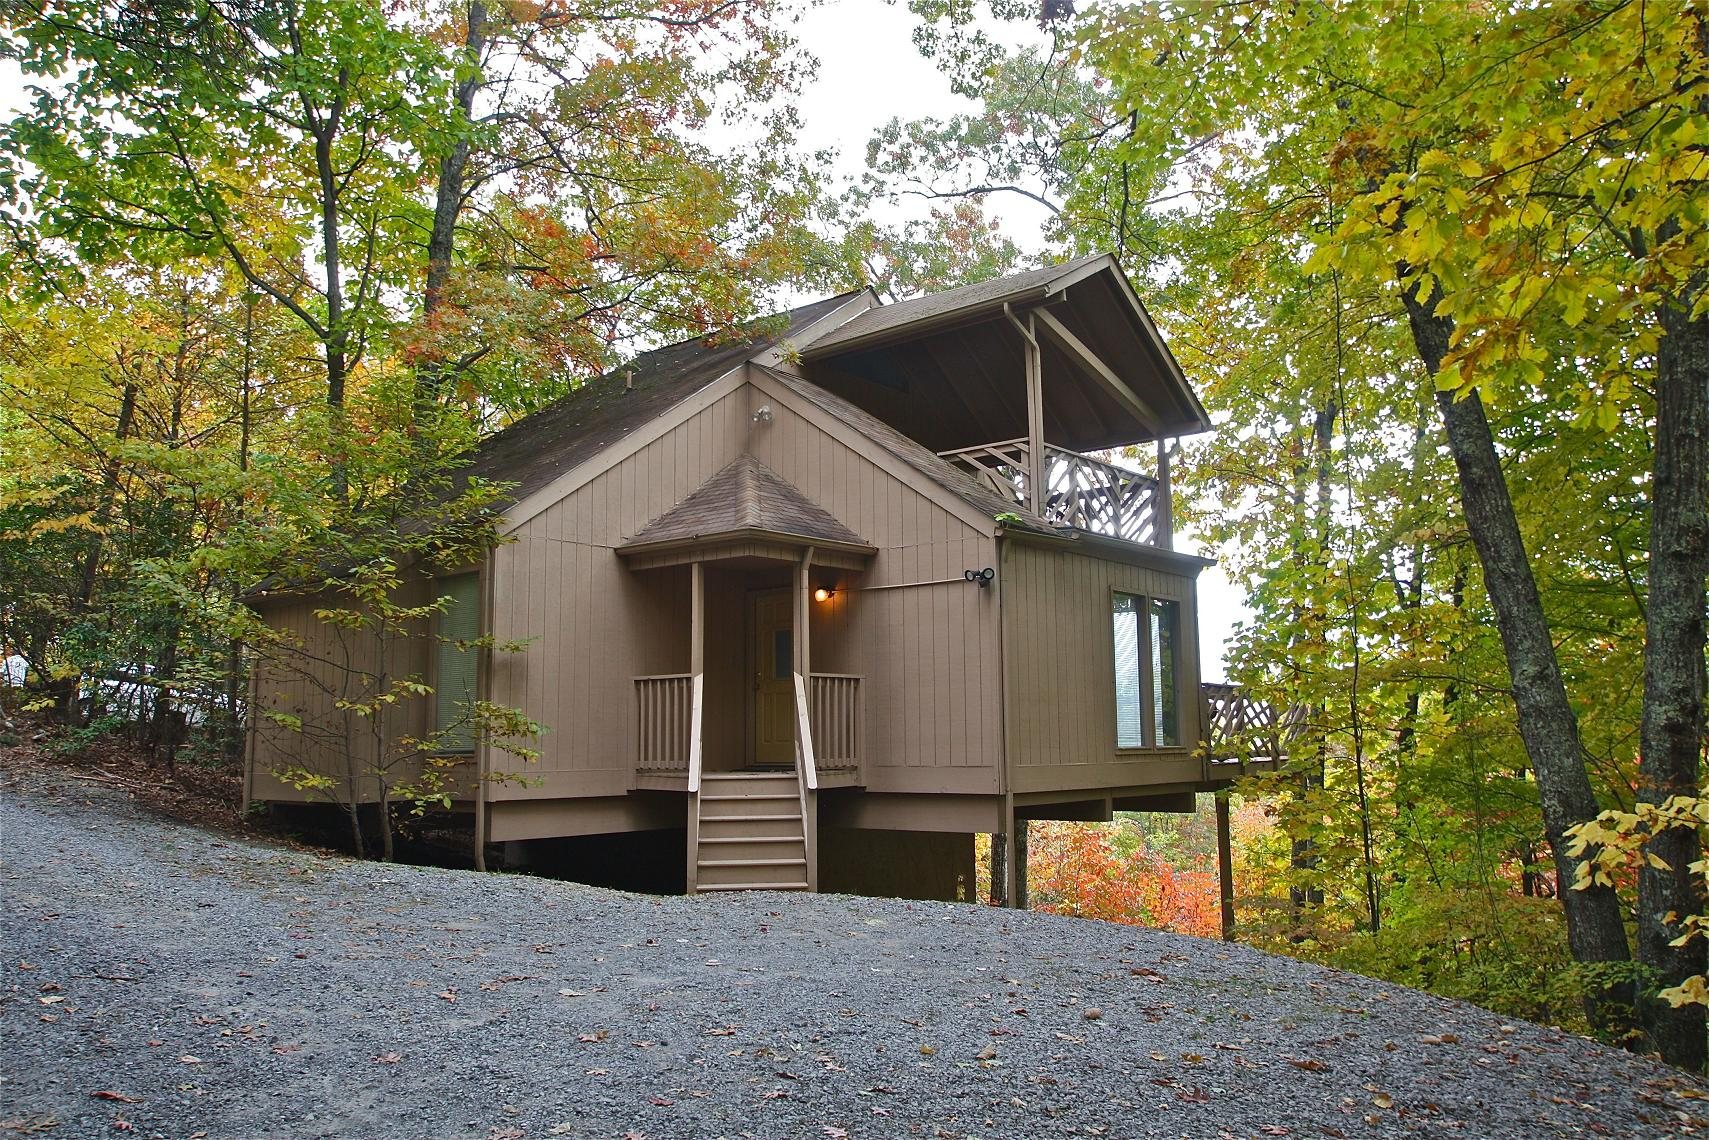 Romantic honeymoon cabin rentals in gatlinburg tn mtn - 3 bedroom cabins in gatlinburg tn cheap ...